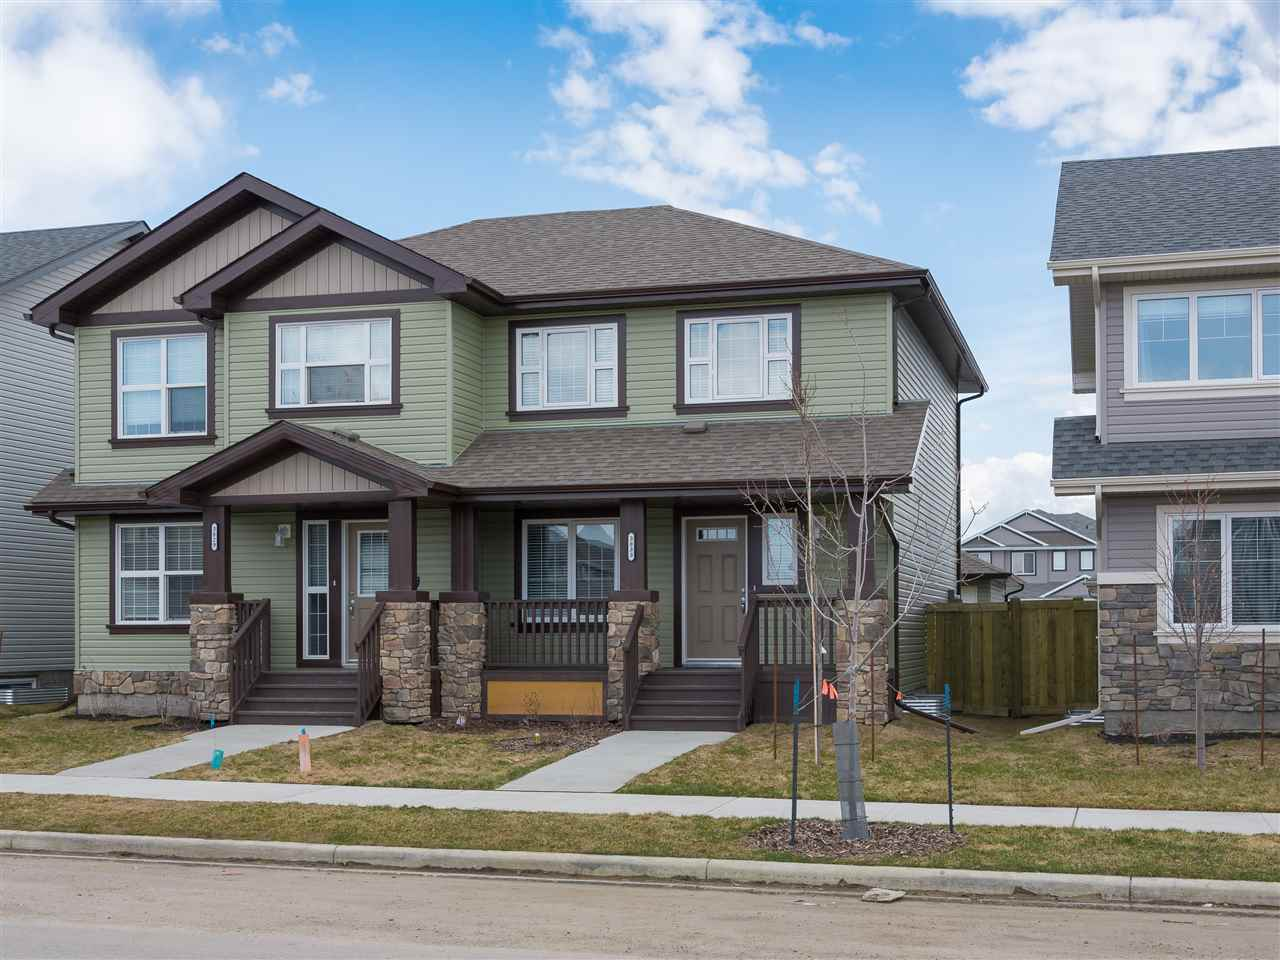 Main Photo: 3833 170A Avenue in Edmonton: Zone 03 House Half Duplex for sale : MLS(r) # E4062213